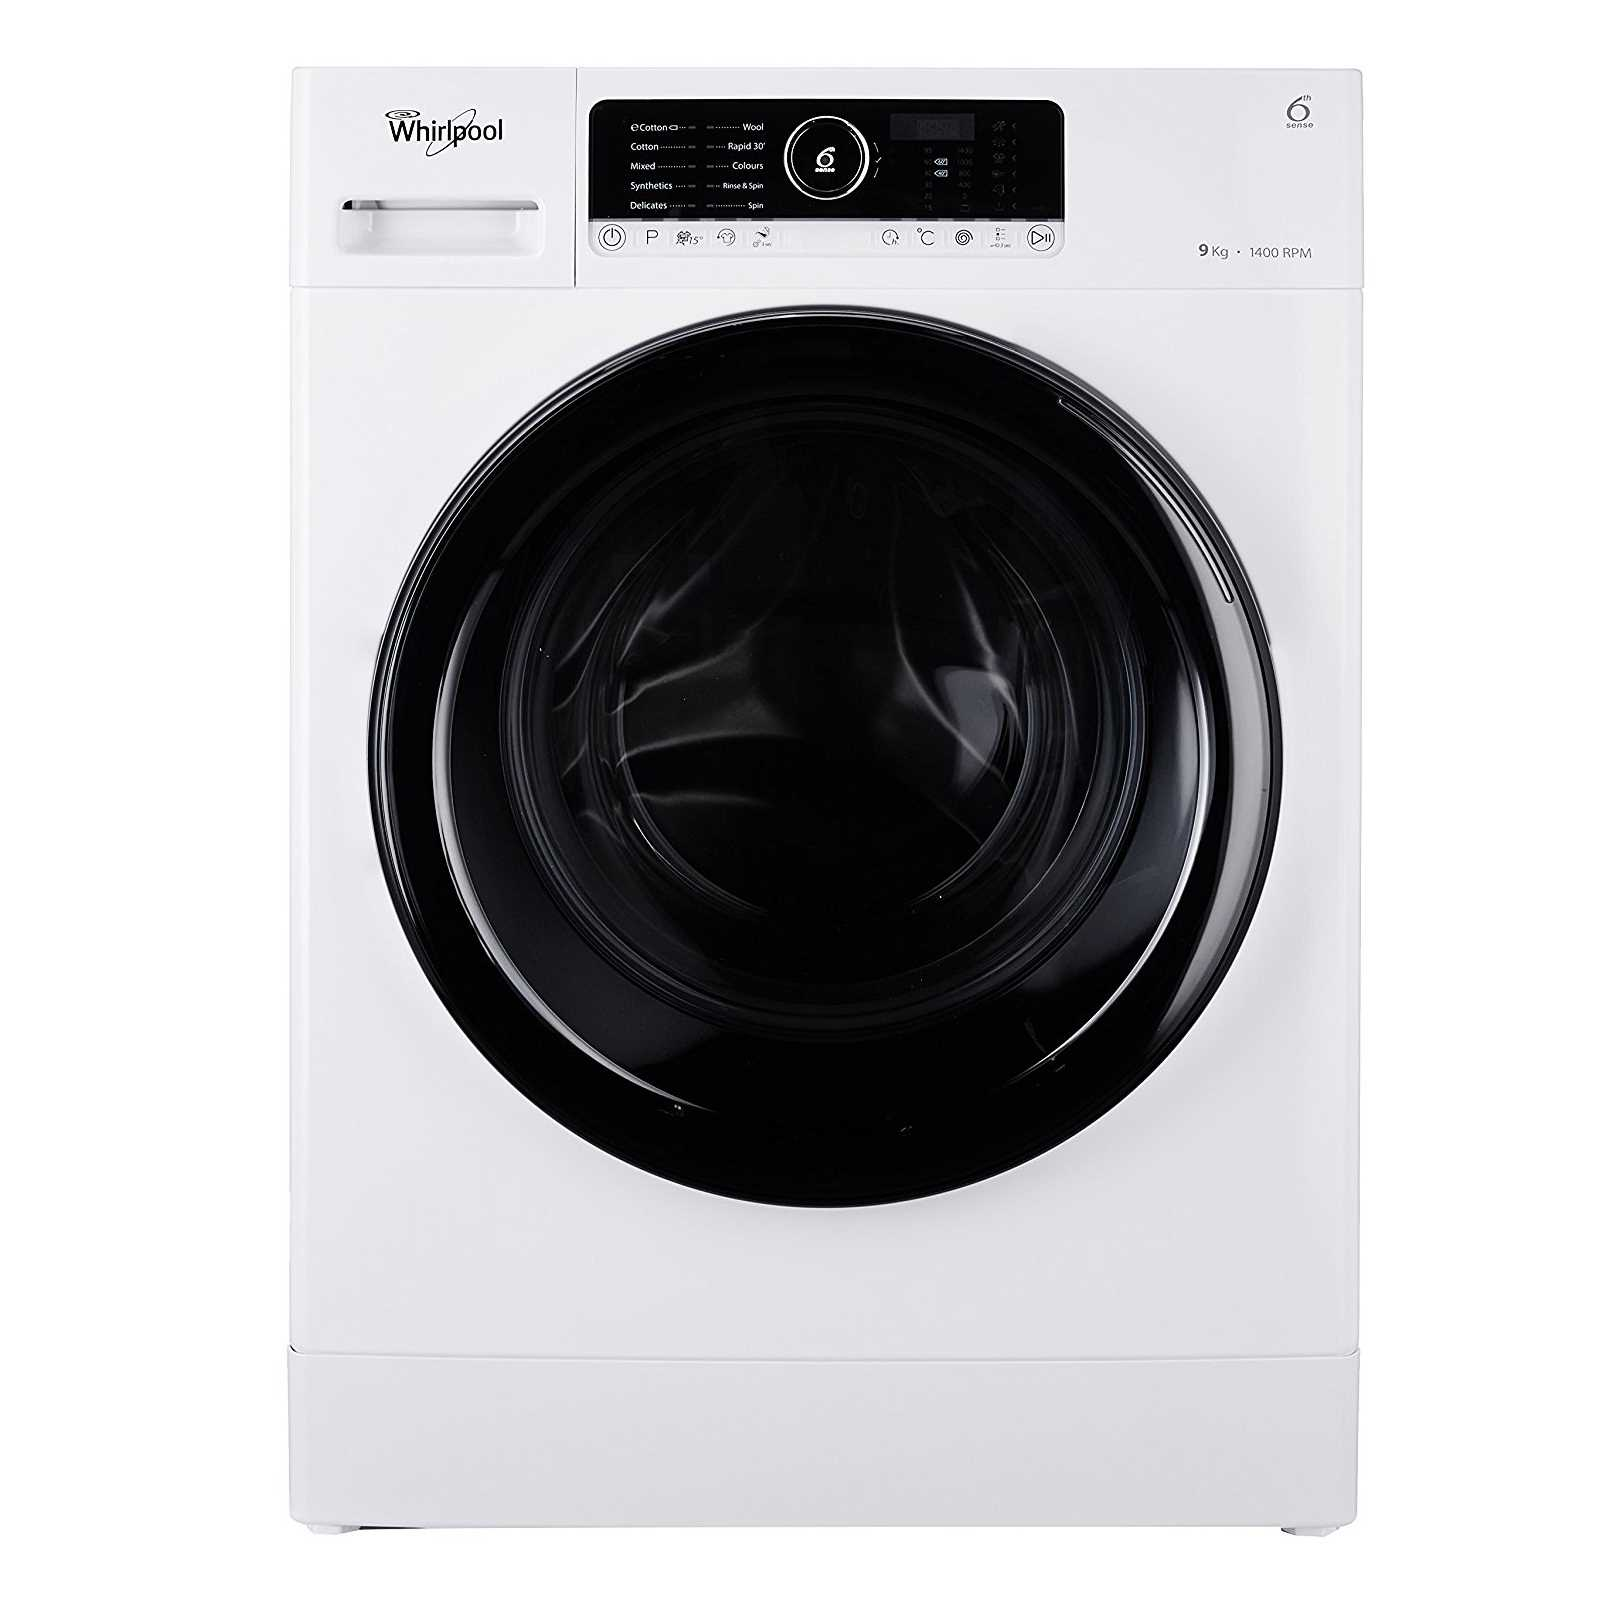 Whirlpool Supreme Care 9 Kg Fully Automatic Front Loading Washing Machine